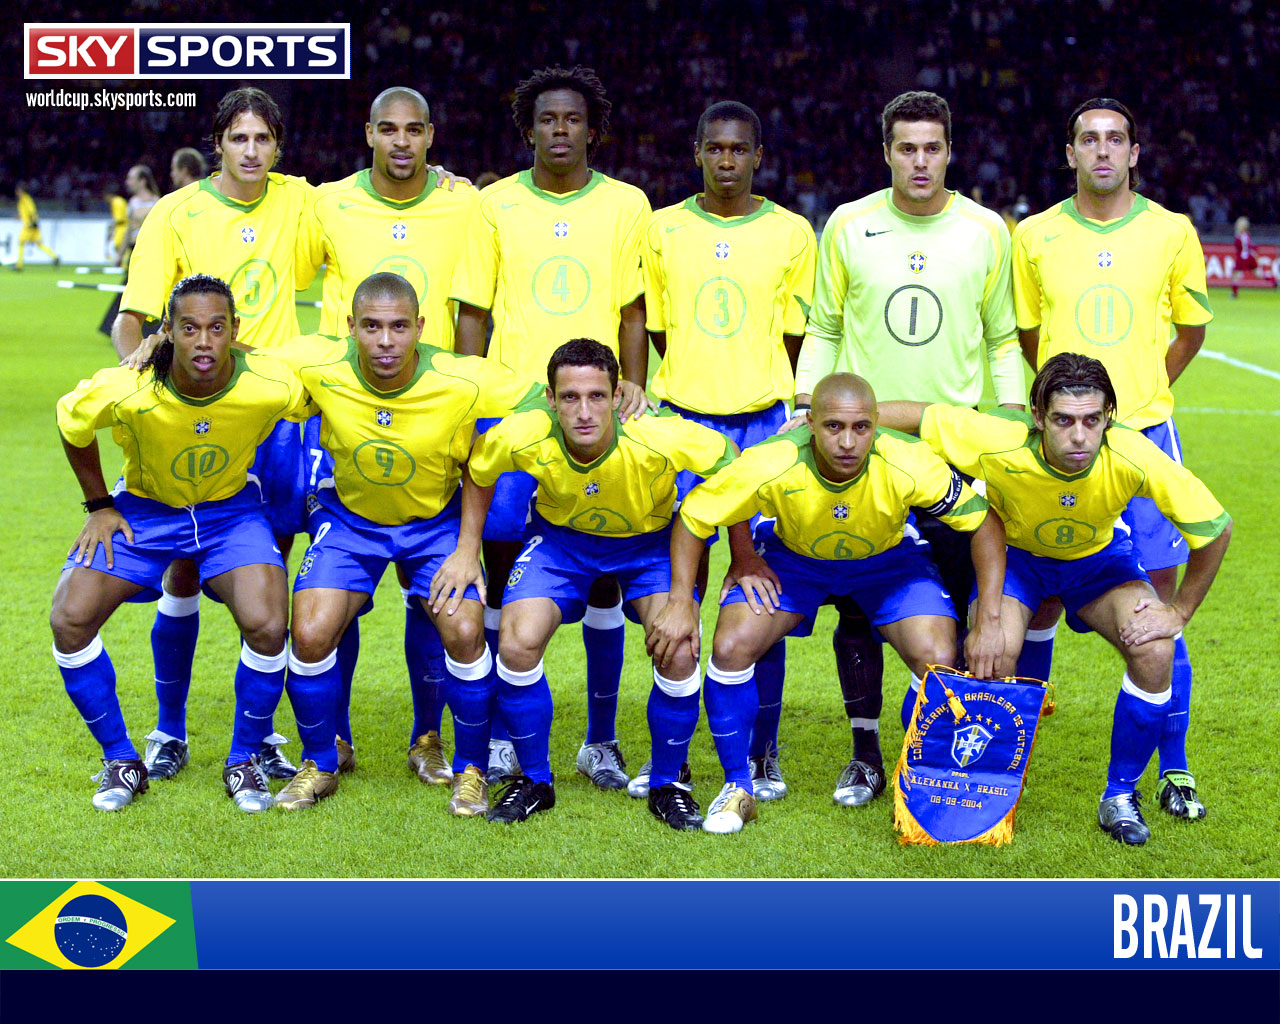 Brazil World Cup 2010 TEam